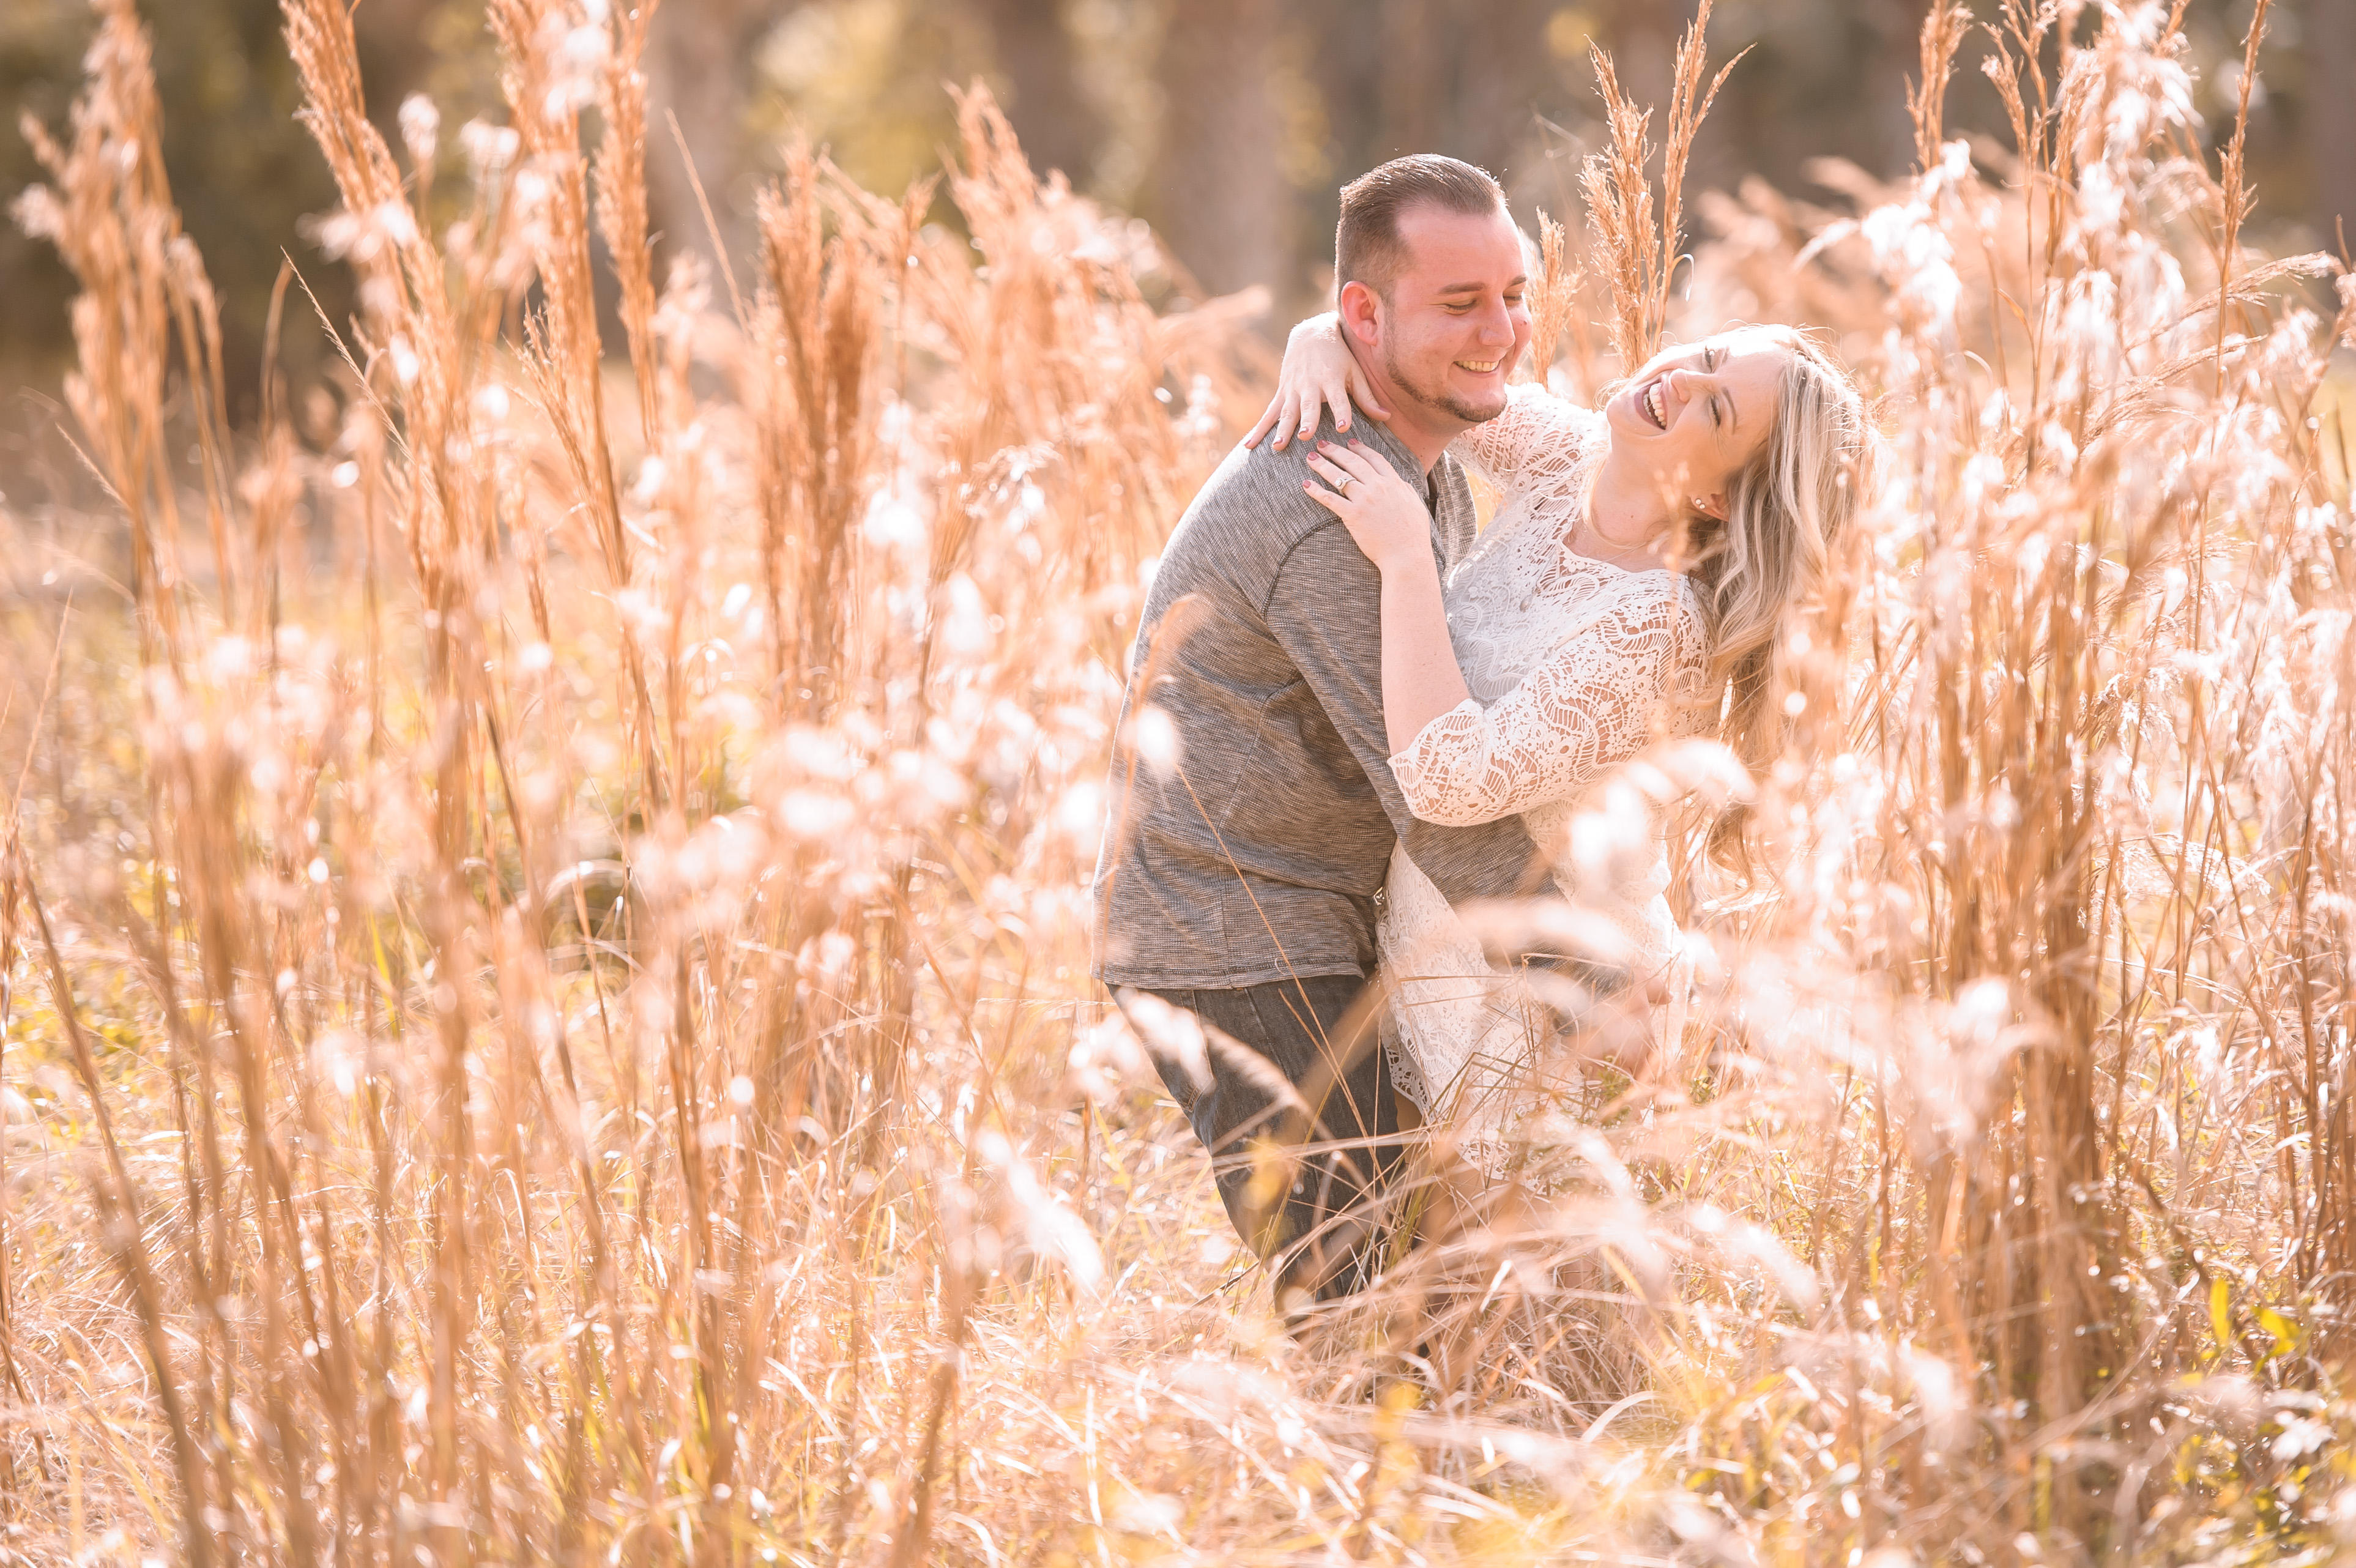 Poirier Wedding Photography Coupons Near Me In Lake Worth